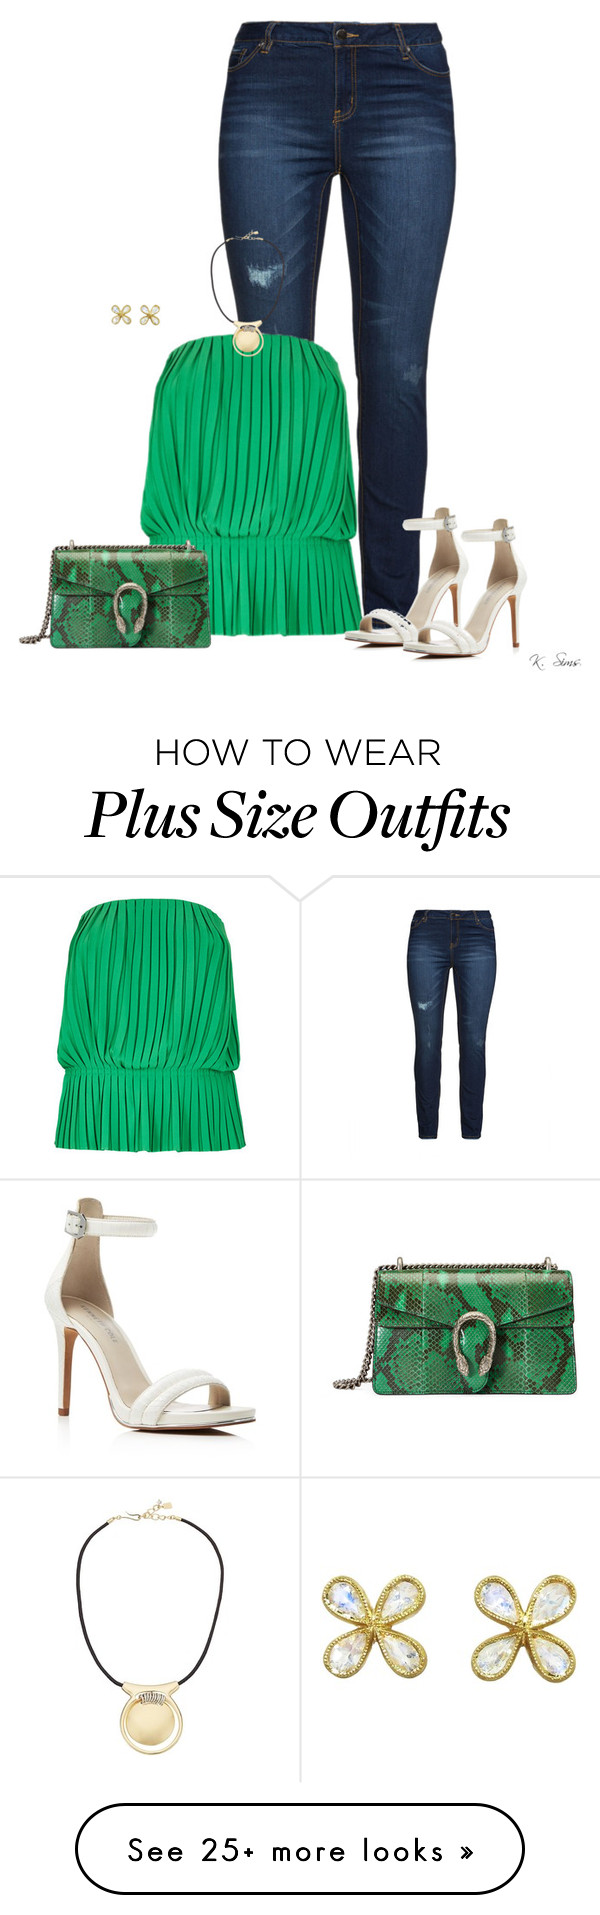 """For some reason, I could only use white heels"" by ksims-1 on Polyvore featuring Mynt 1792, Nicole Miller, Kenneth Cole, Gucci, Robert Lee Morris and Cathy Waterman"